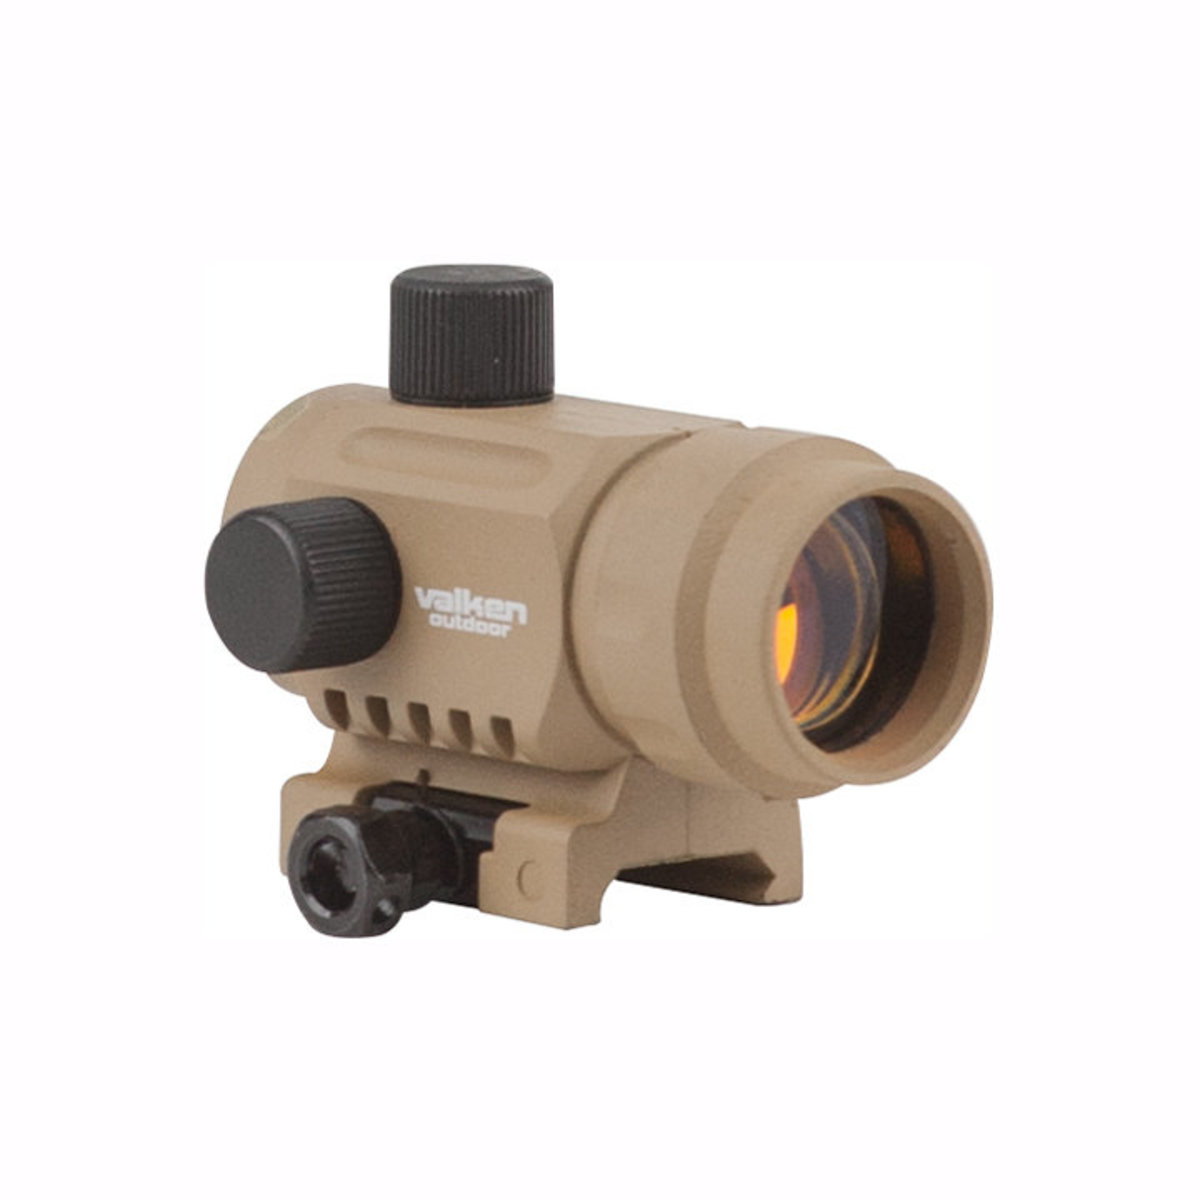 View larger image of Valken RDA20 Mini Red Dot Sight